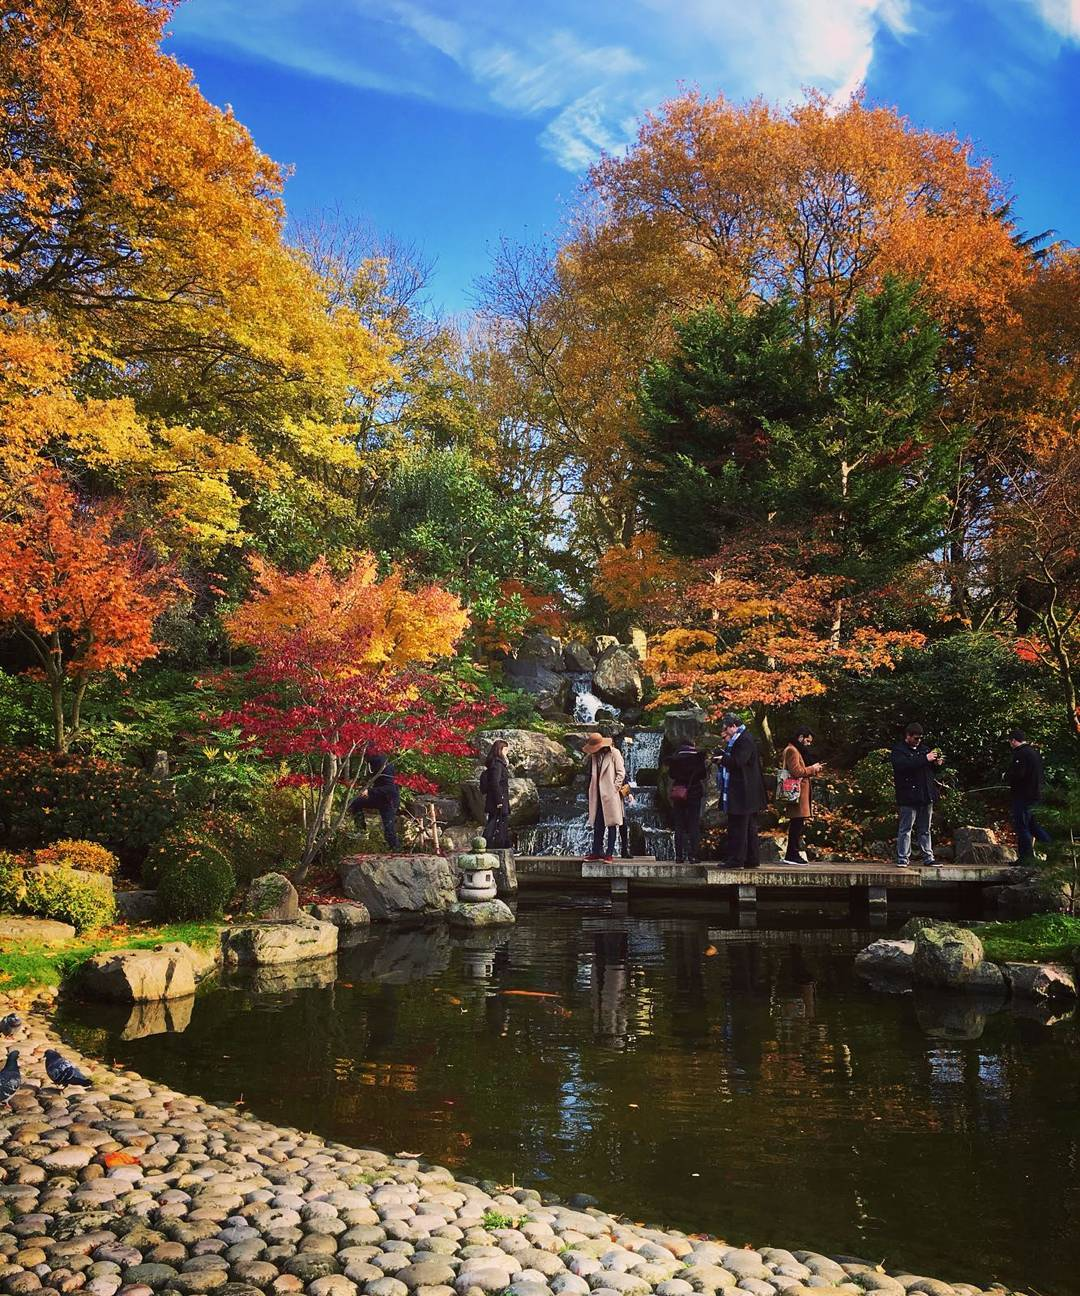 Kyoto Garden: The Tranquil Japanese Oasis Of Calm For Londoners